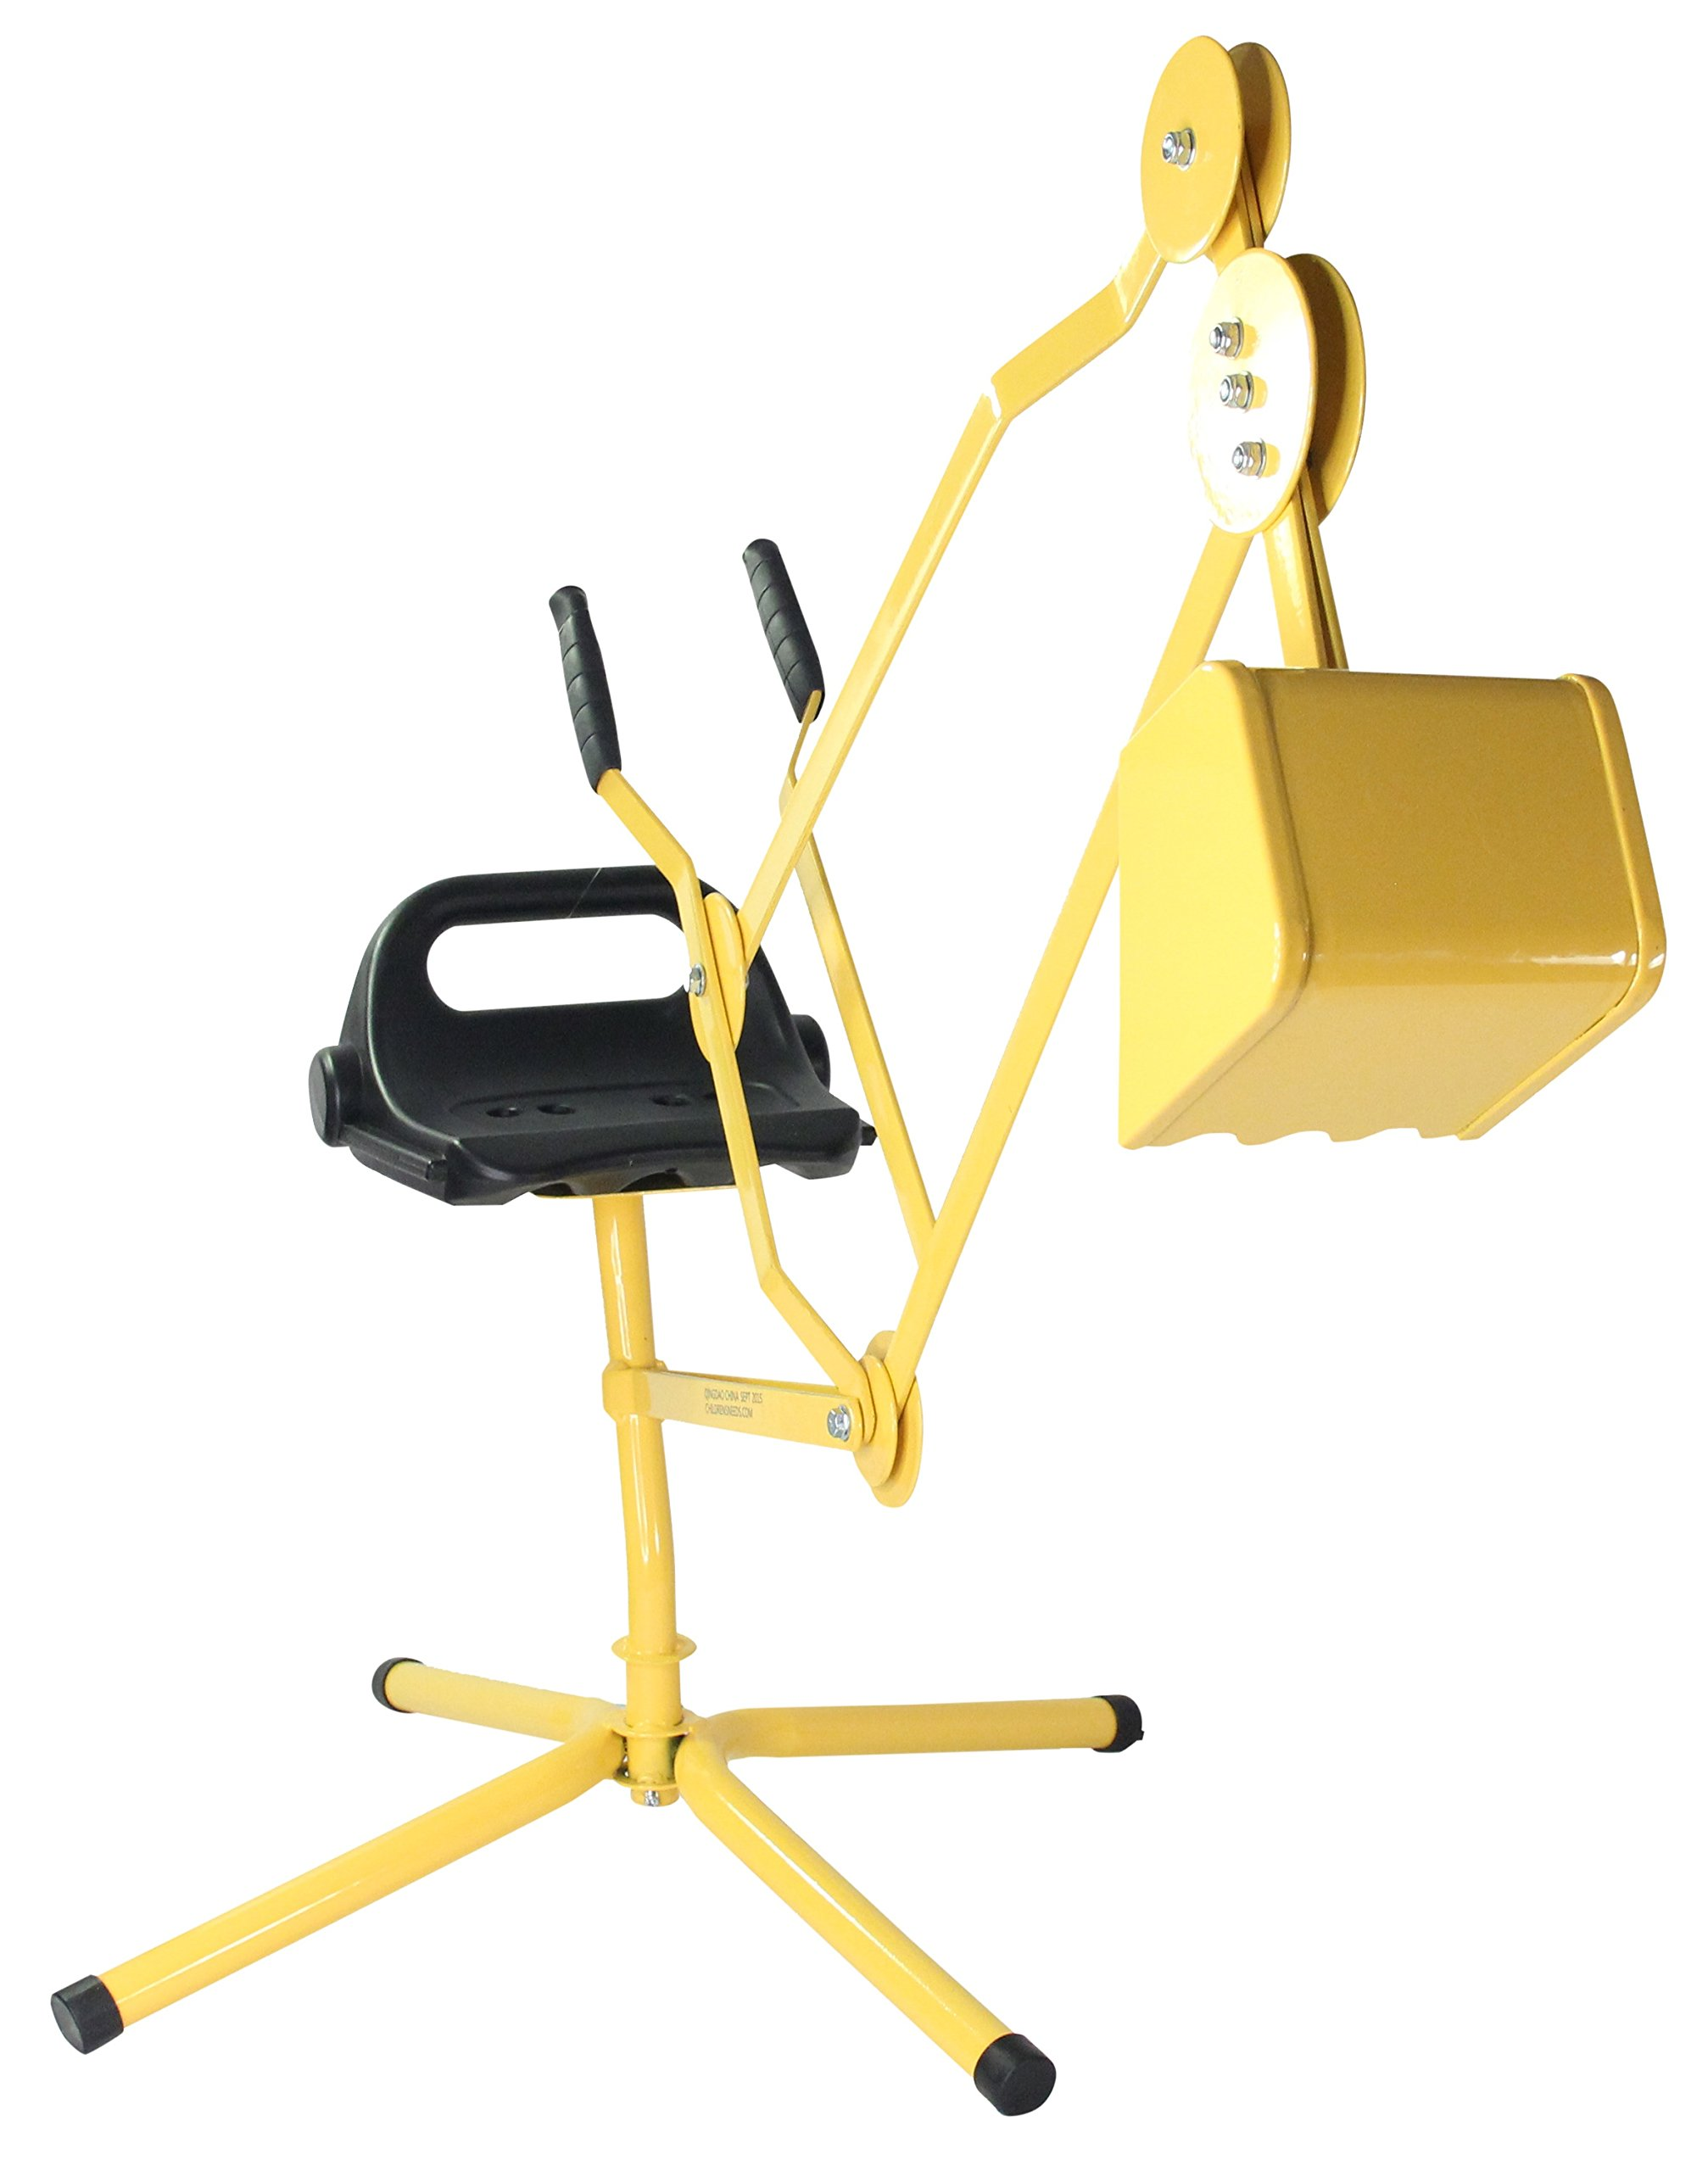 Childrensneeds.com Legged Sand Digger Toy Backhoe for Snow, Sand, Beach, Dirt, A Durable Metal Outdoor Ride-On Excavator Toy for Ages 3 & Up (Yellow)